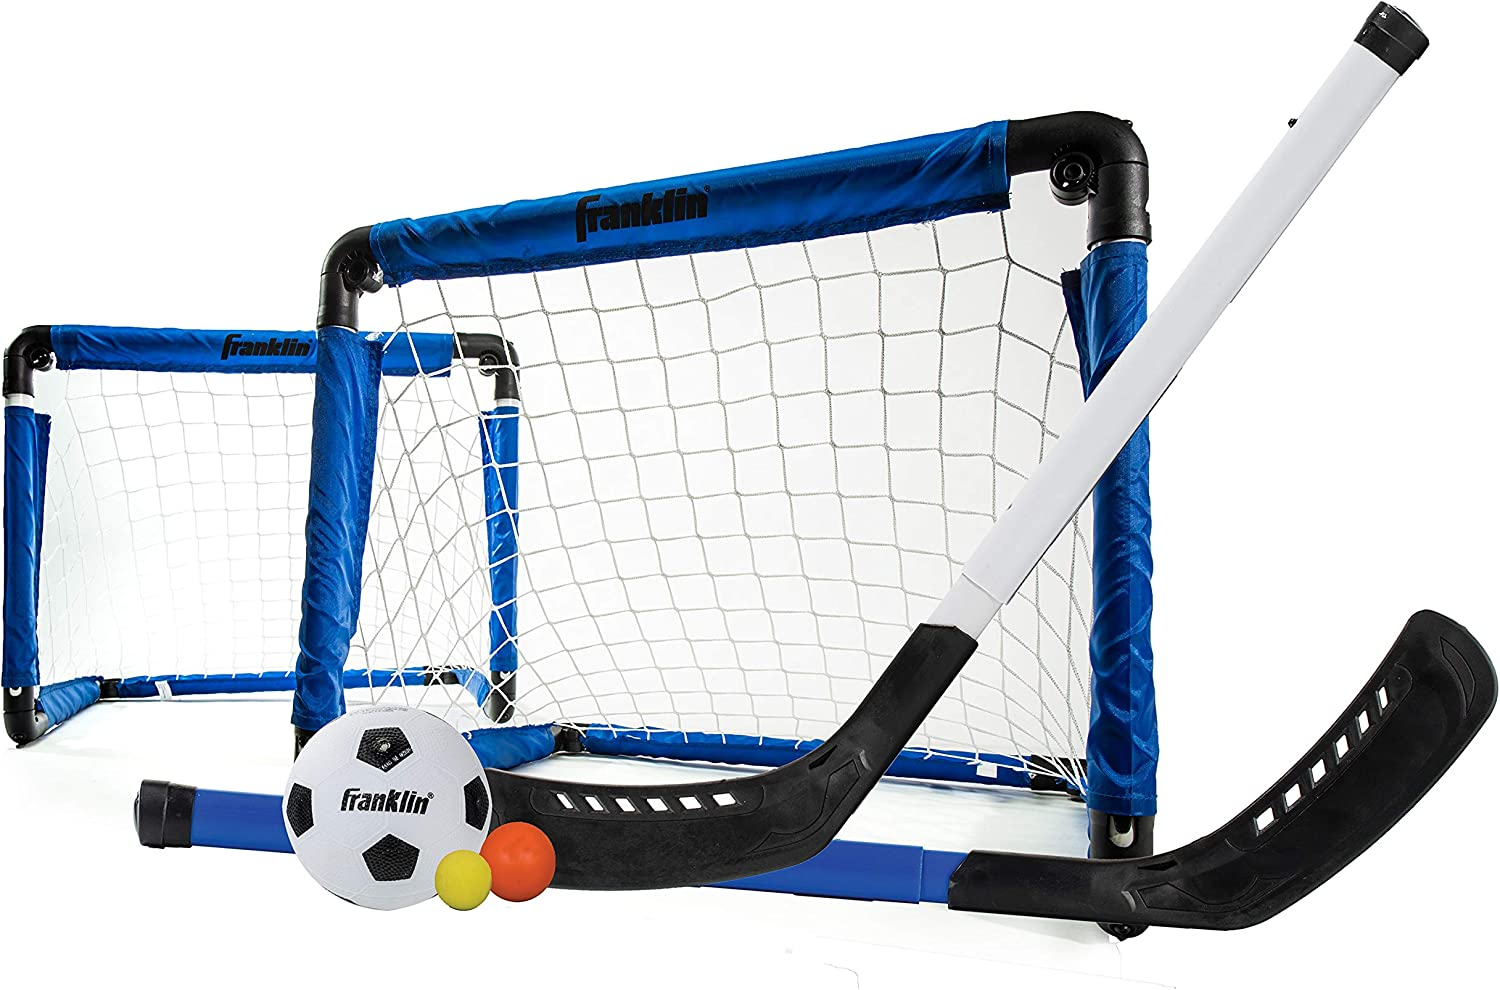 Franklin Sports Indoor Mini Goal Sports Set - 3 in 1 Kids Indoor Goal Set - Indoor Mini Floor Hockey, Knee Hockey, and Mini Soccer Set for Kids : Hockey Equipment : Sports & Outdoors